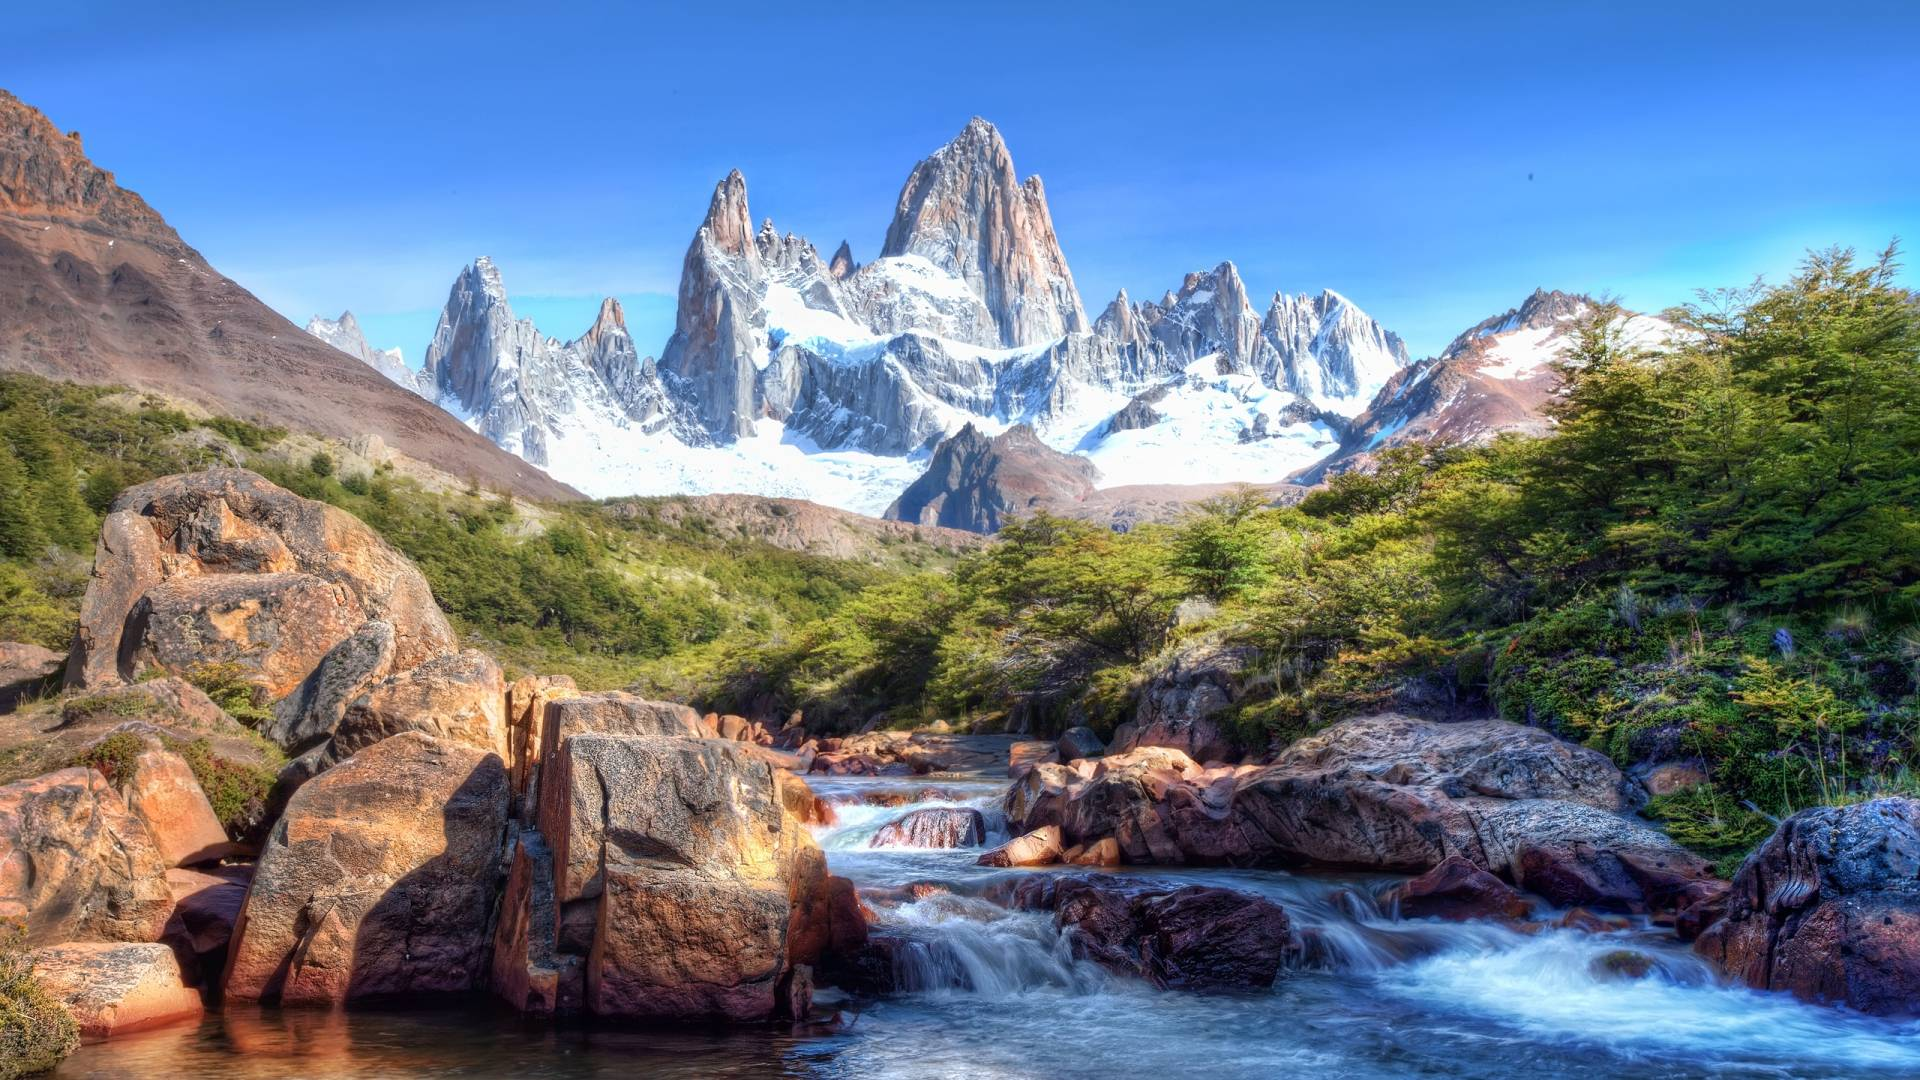 Mountains and River wallpapers backgrounds hd 1080P,Picturesque